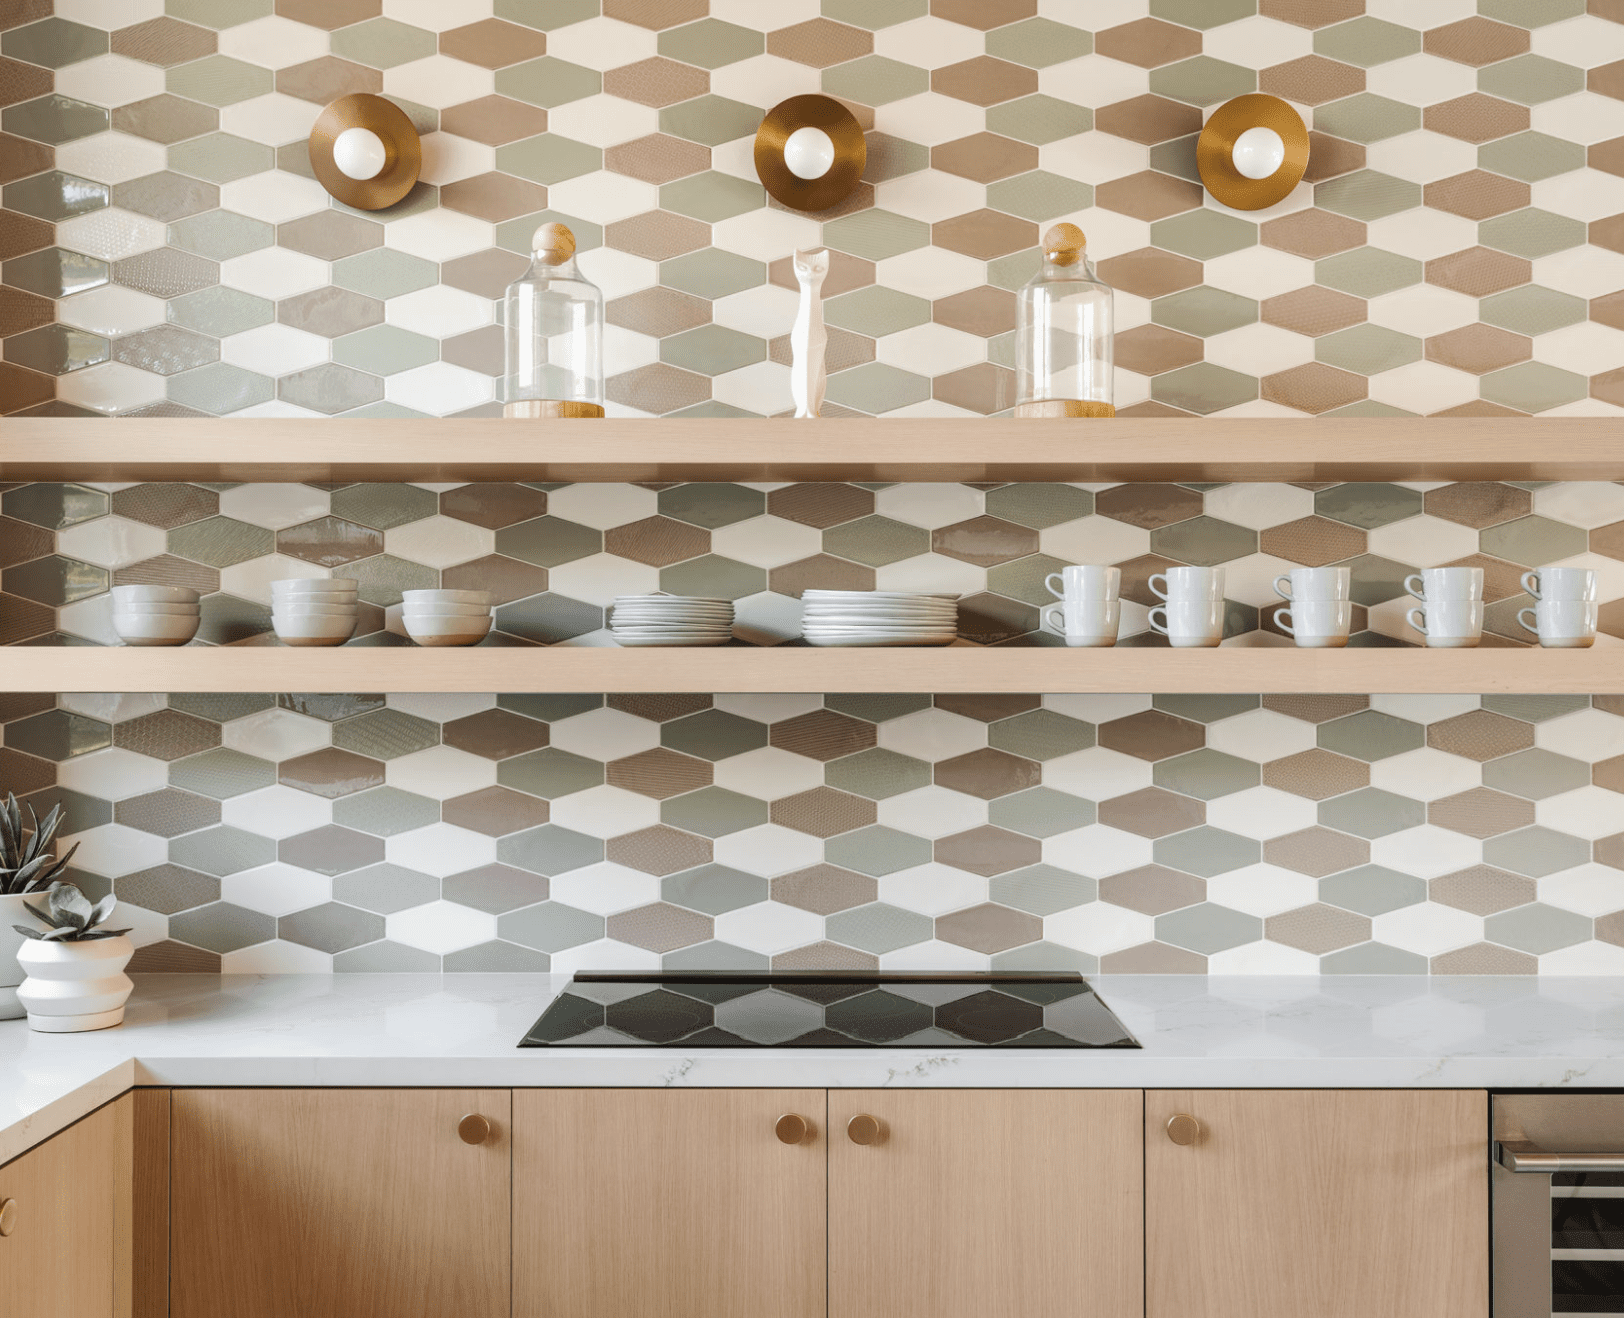 A multicolored backsplash, crafted using the same tile in different colors